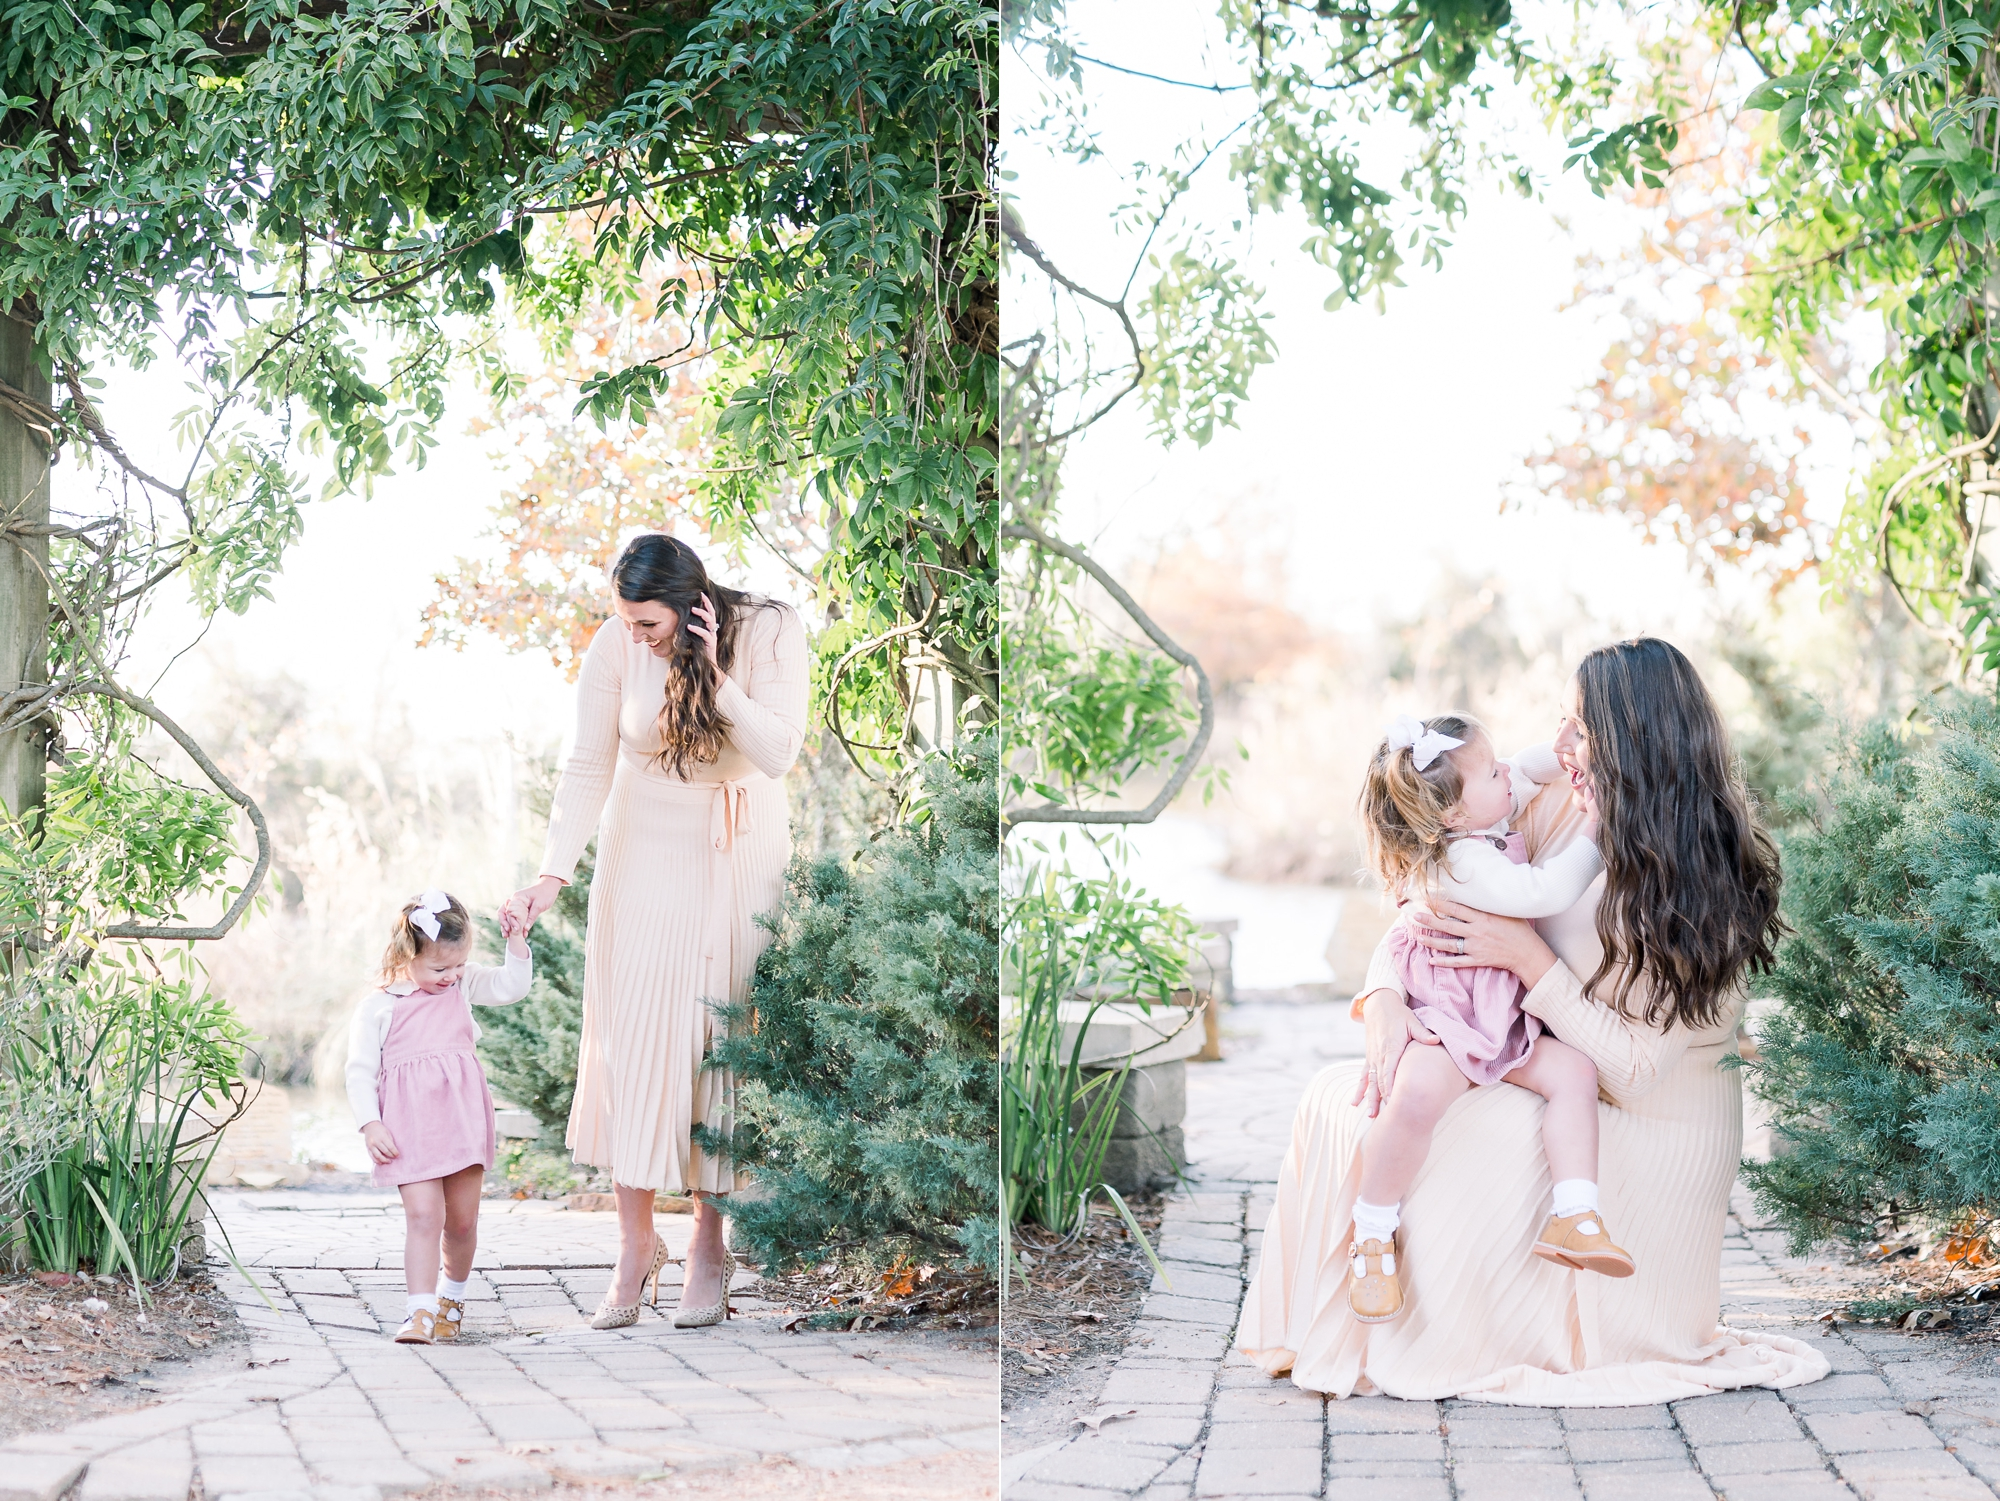 Portraits of Mom and toddler walking and cuddling in park session in McKinney, TX. Photo by Aimee Hamilton Photography.